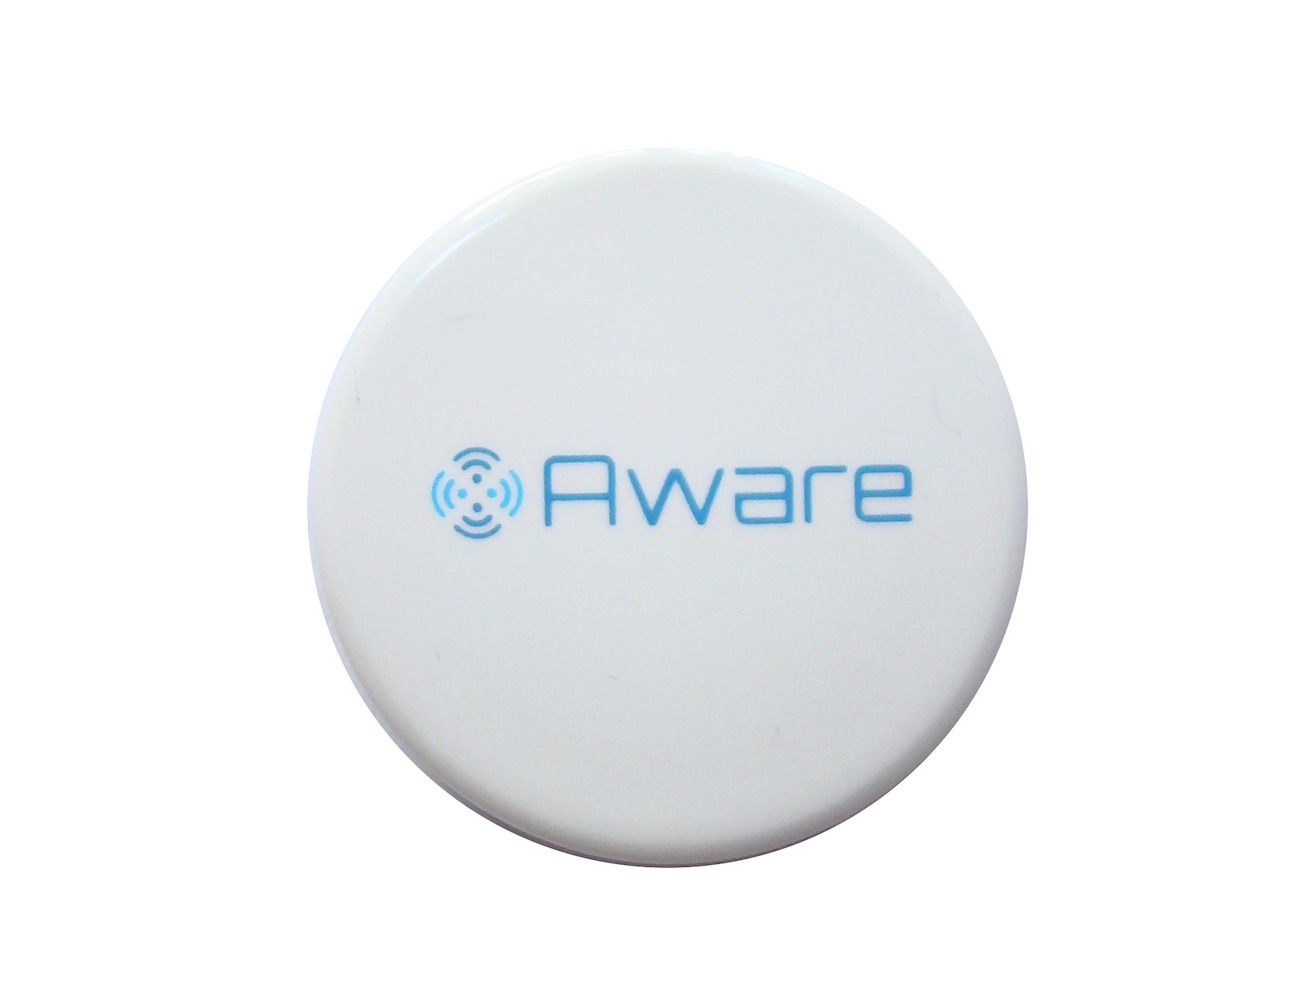 Aware – Makes Any Car Smarter